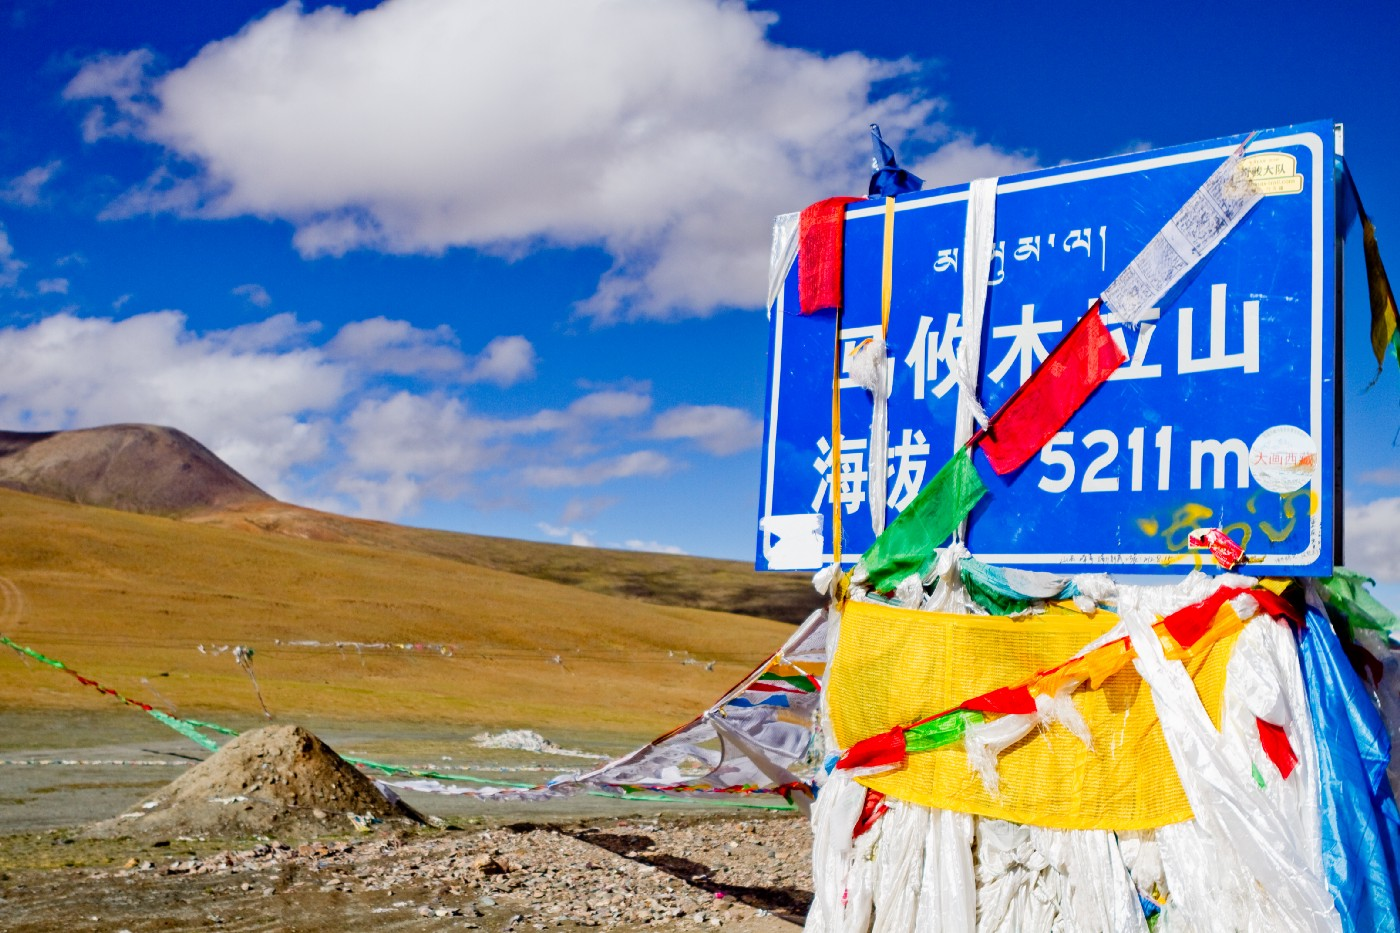 A mountain plateau. A road sign indicating elevation is wrapped around Tibetan prayer flags. The sign is mostly written in Chinese characters, but there are smaller Tibetan characters above it.